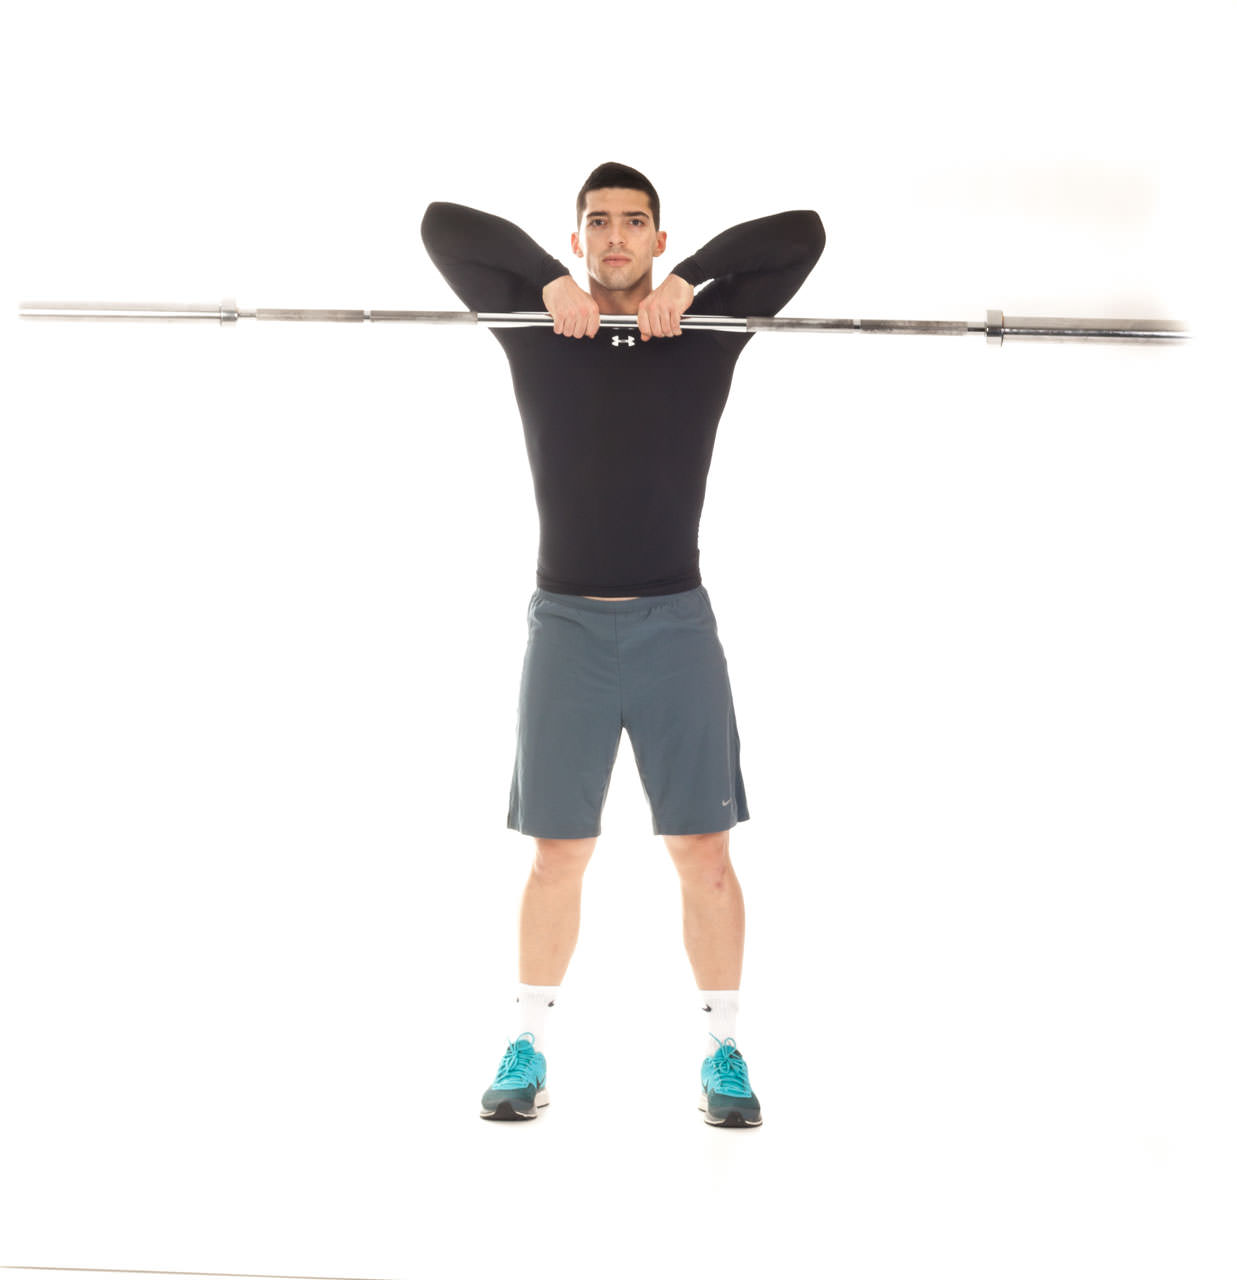 Close-Grip Upright Barbell Row frame #2